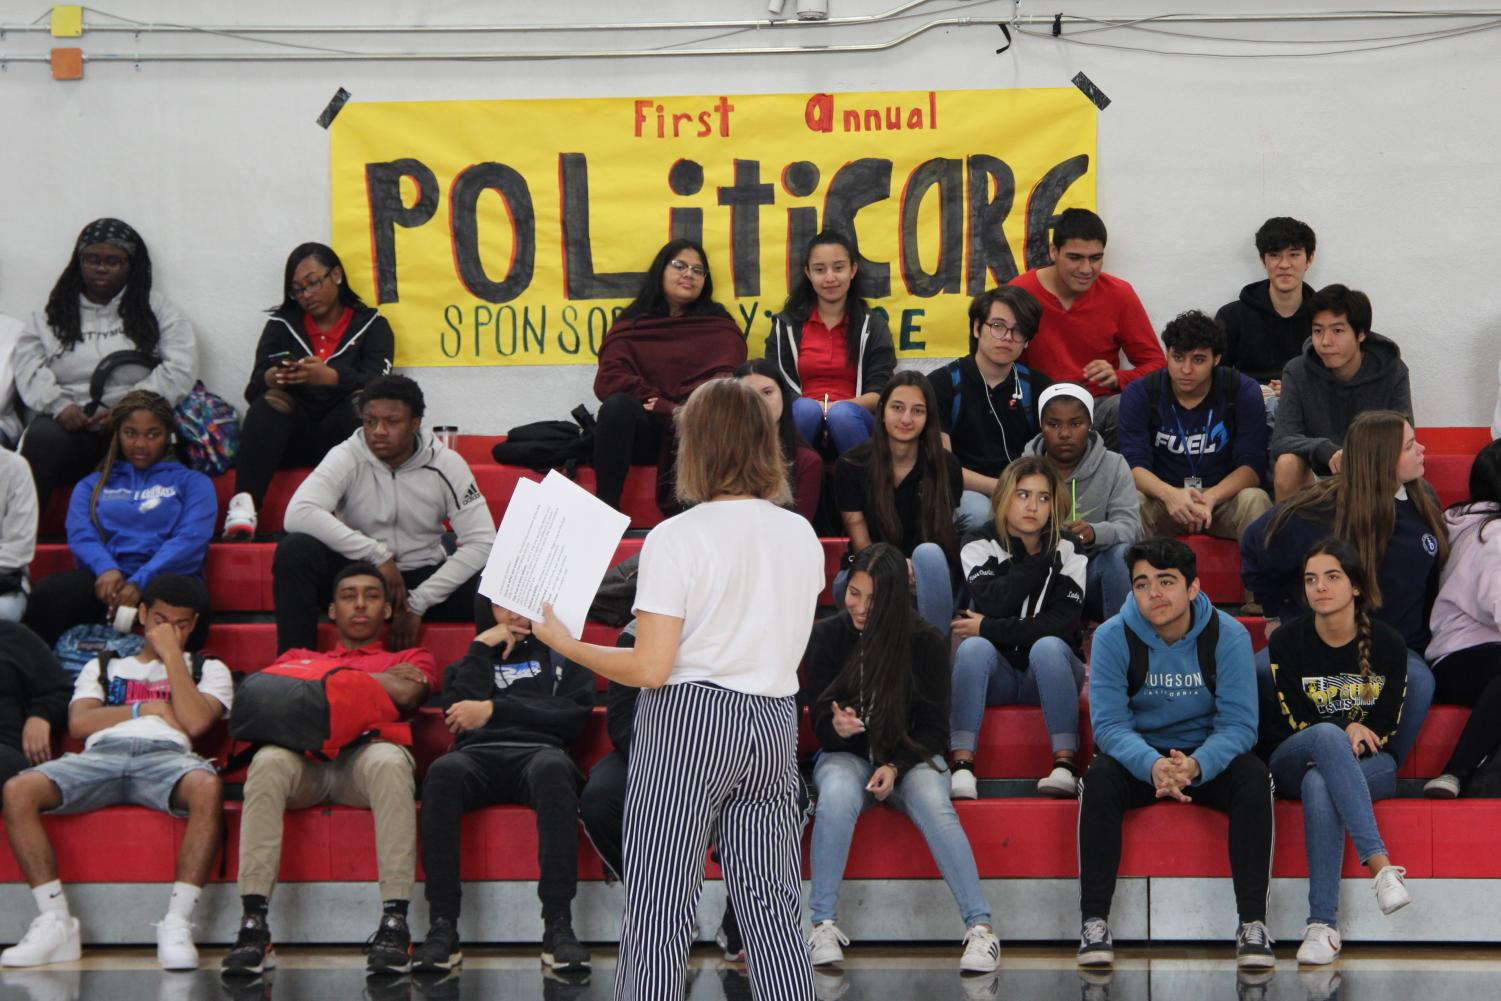 Students listen to one of the several seminars that occurred as part of the Politicare event organized by Gables PACE.